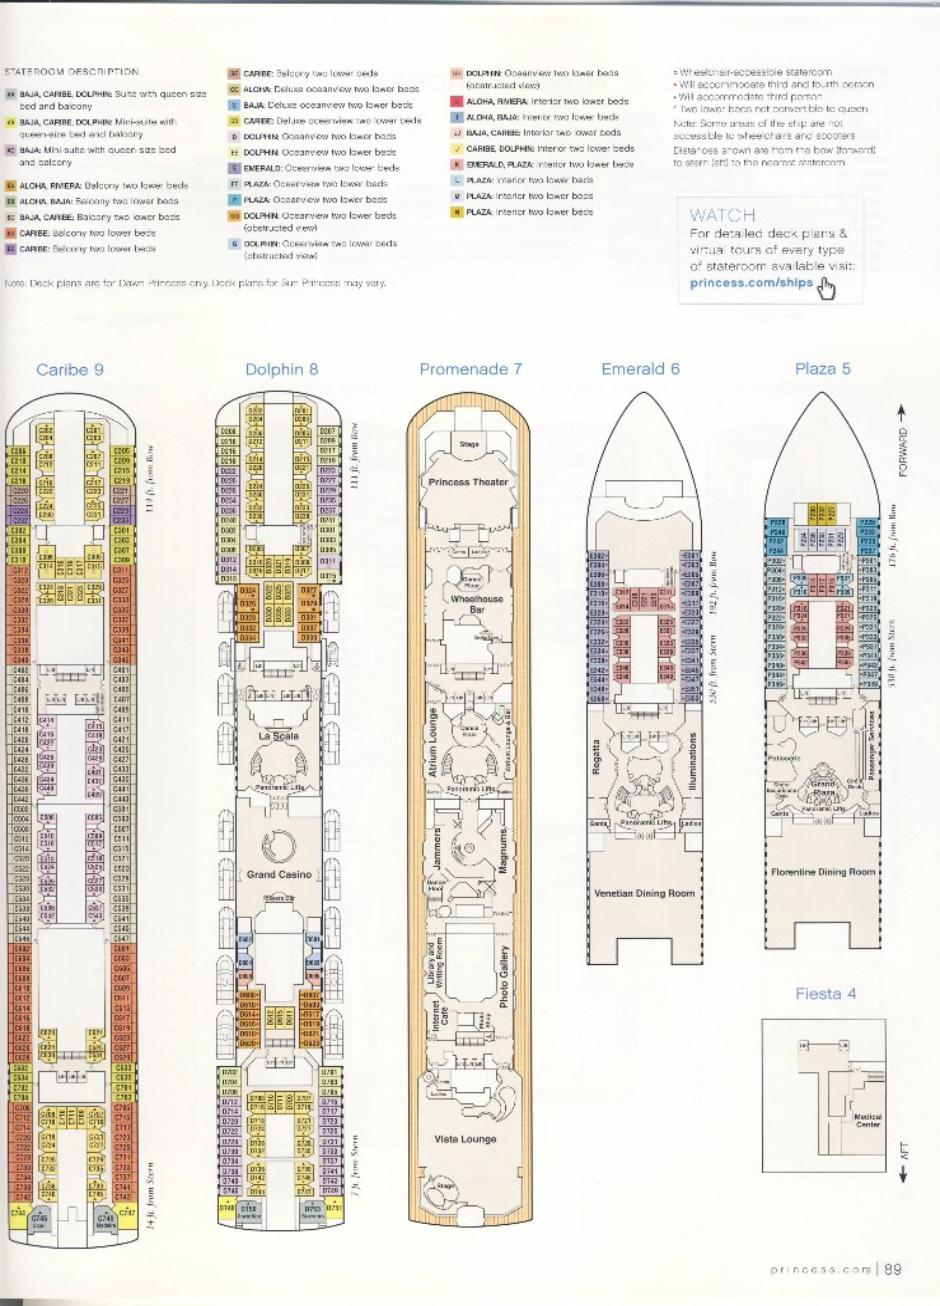 Dawn princess deck plan beyondships home baanklon Image collections